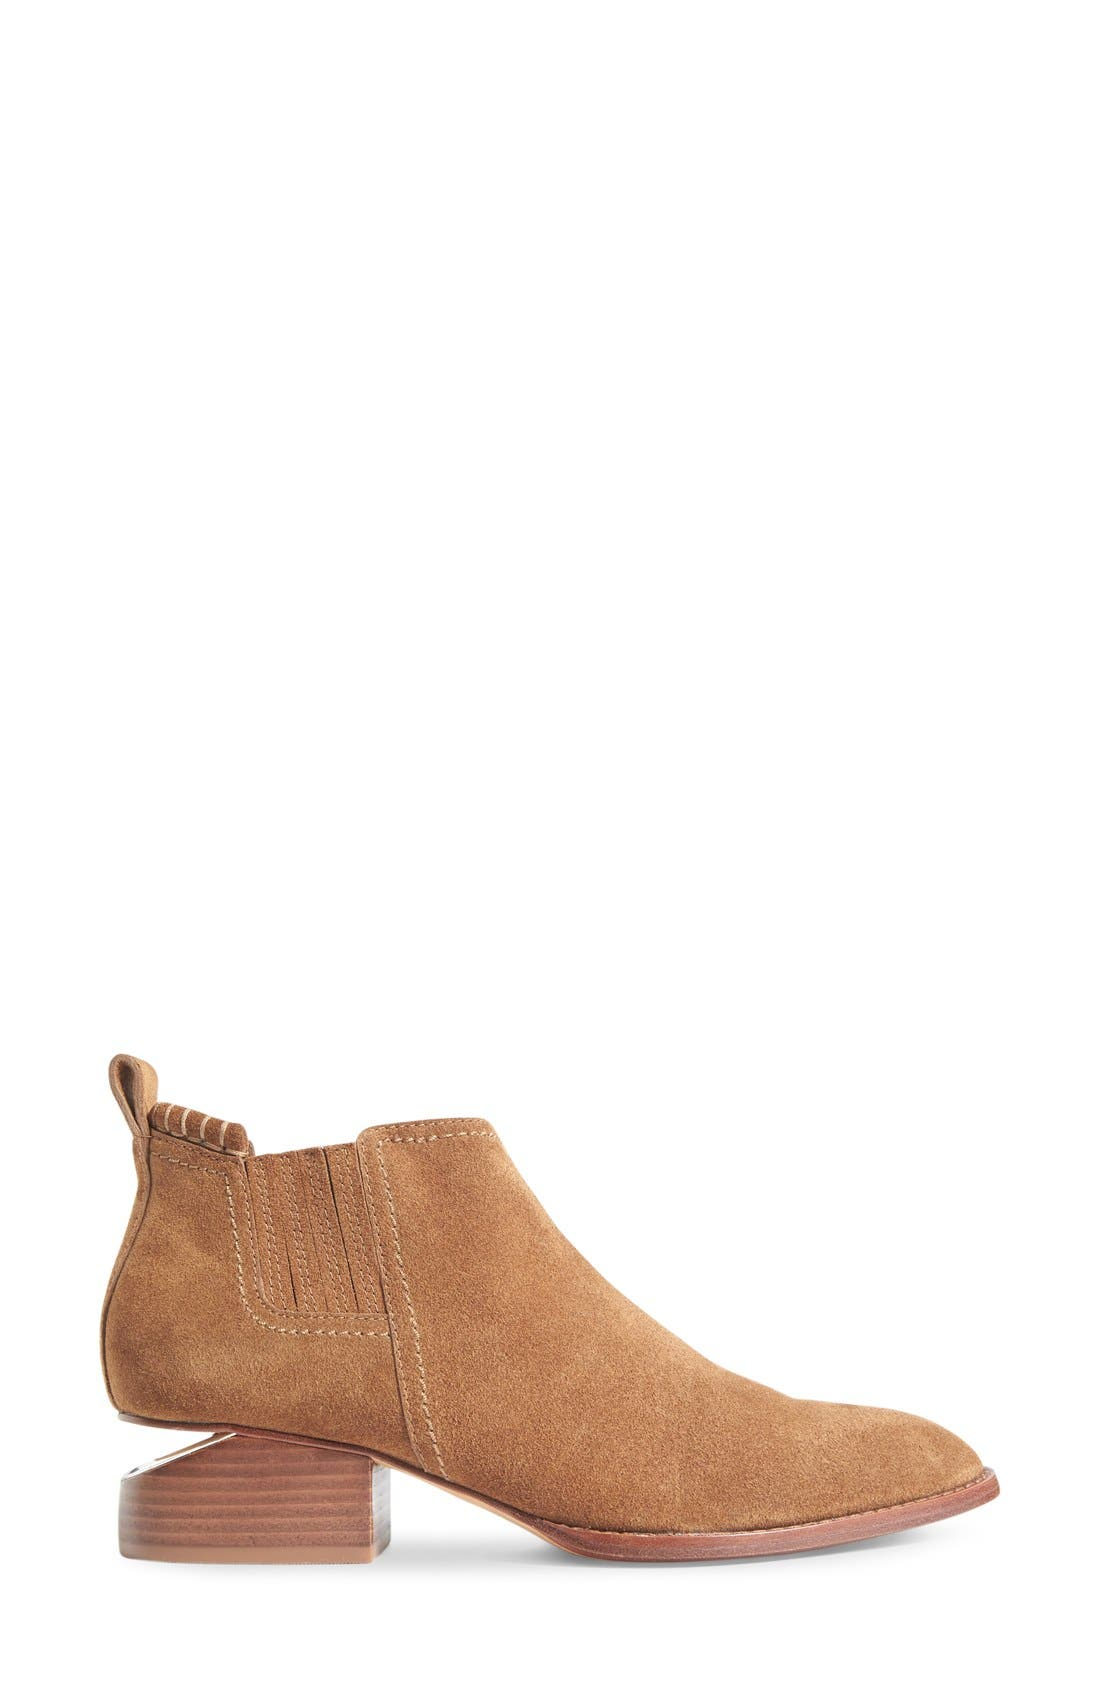 Kori Chelsea Boot,                             Alternate thumbnail 4, color,                             Dark Truffle